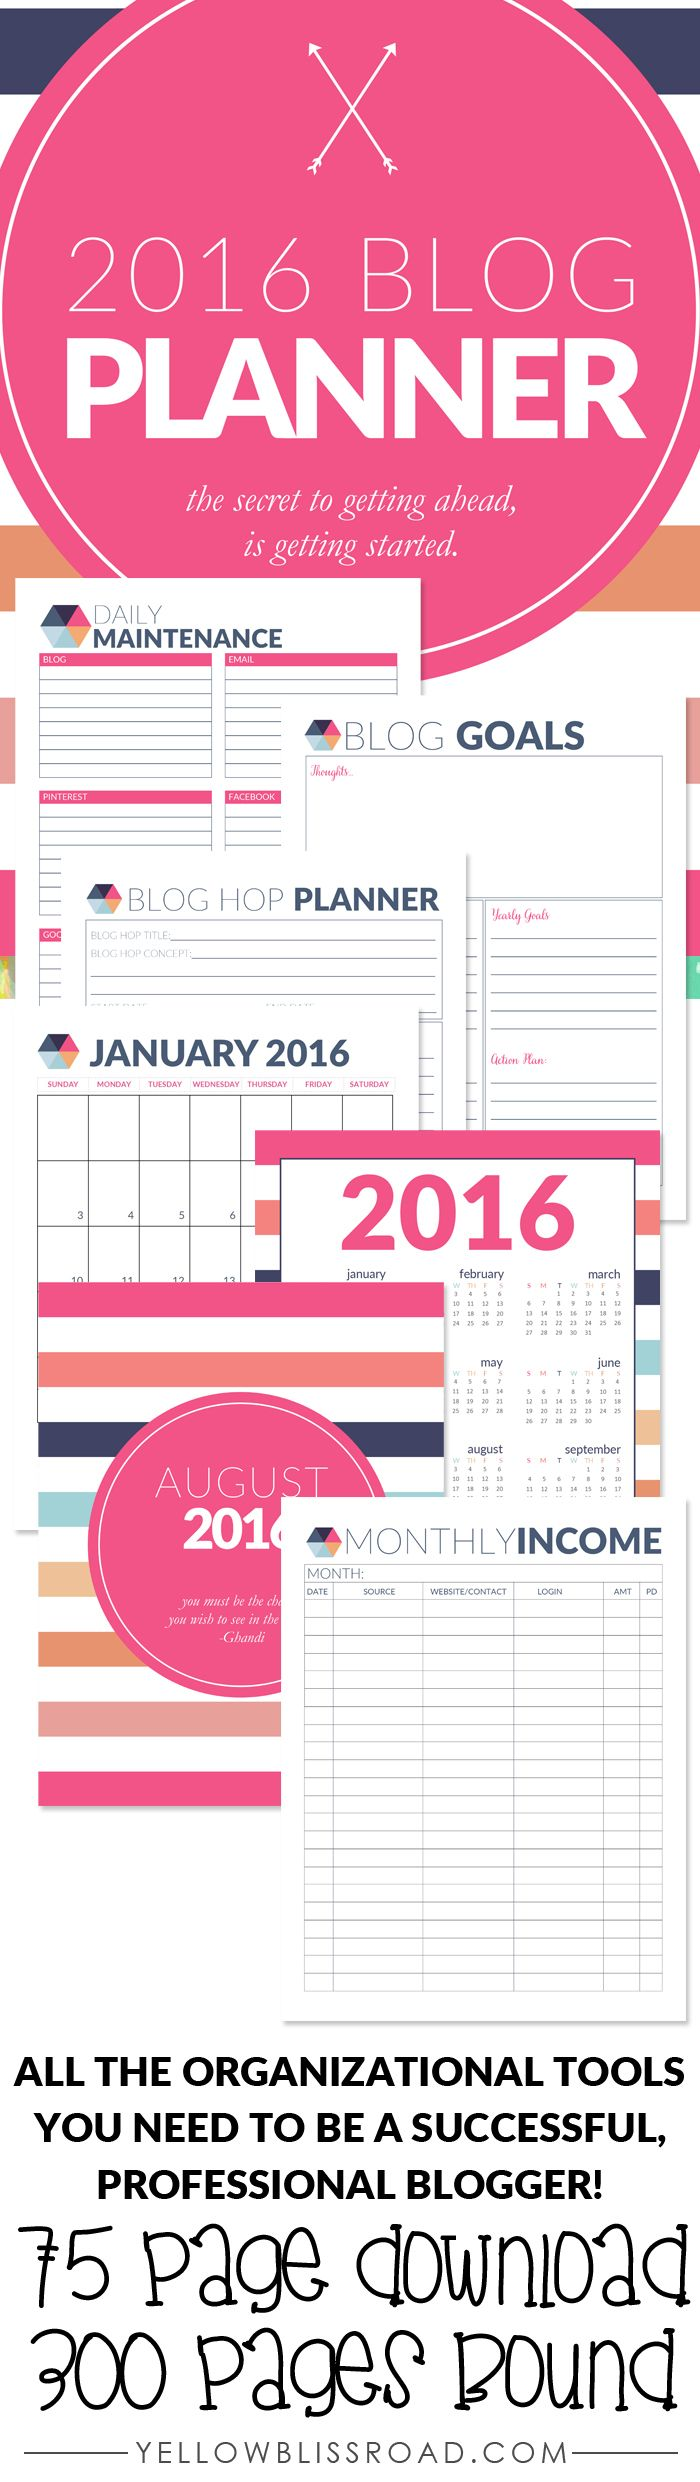 Best 25+ Blog planner ideas on Pinterest | Blogs on life, Toi ...